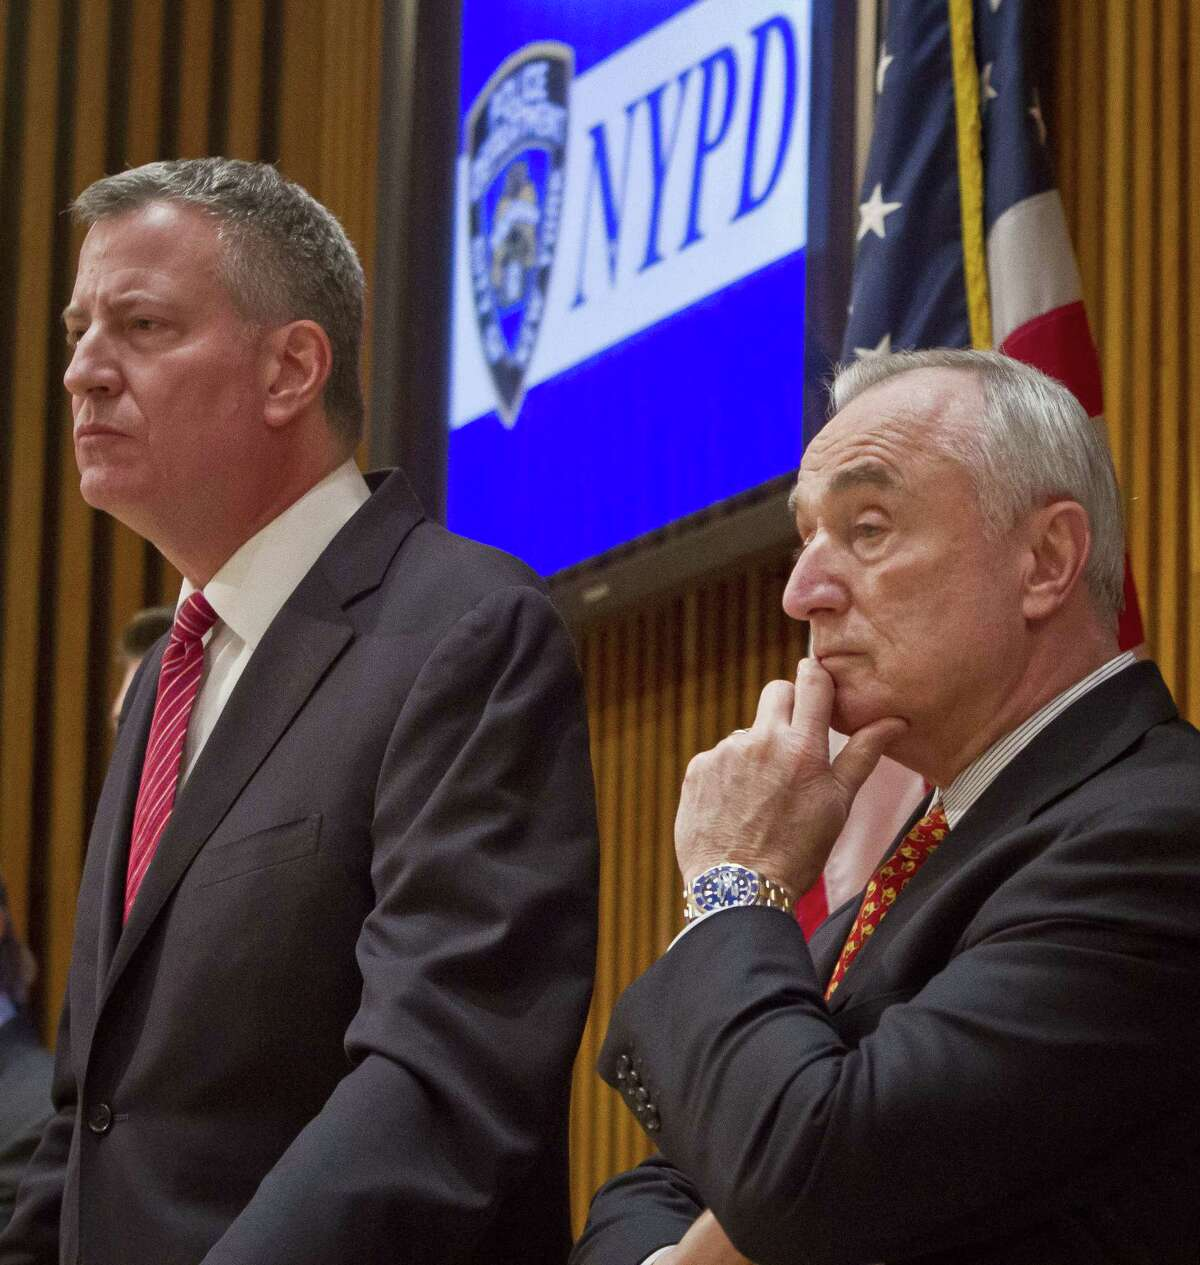 Mayor Bill de Blasio, left, and NYPD Commissioner Bill Bratton, right, listen during a press conference after attending a promotion ceremony for police officers on Dec. 19, 2014 in New York.